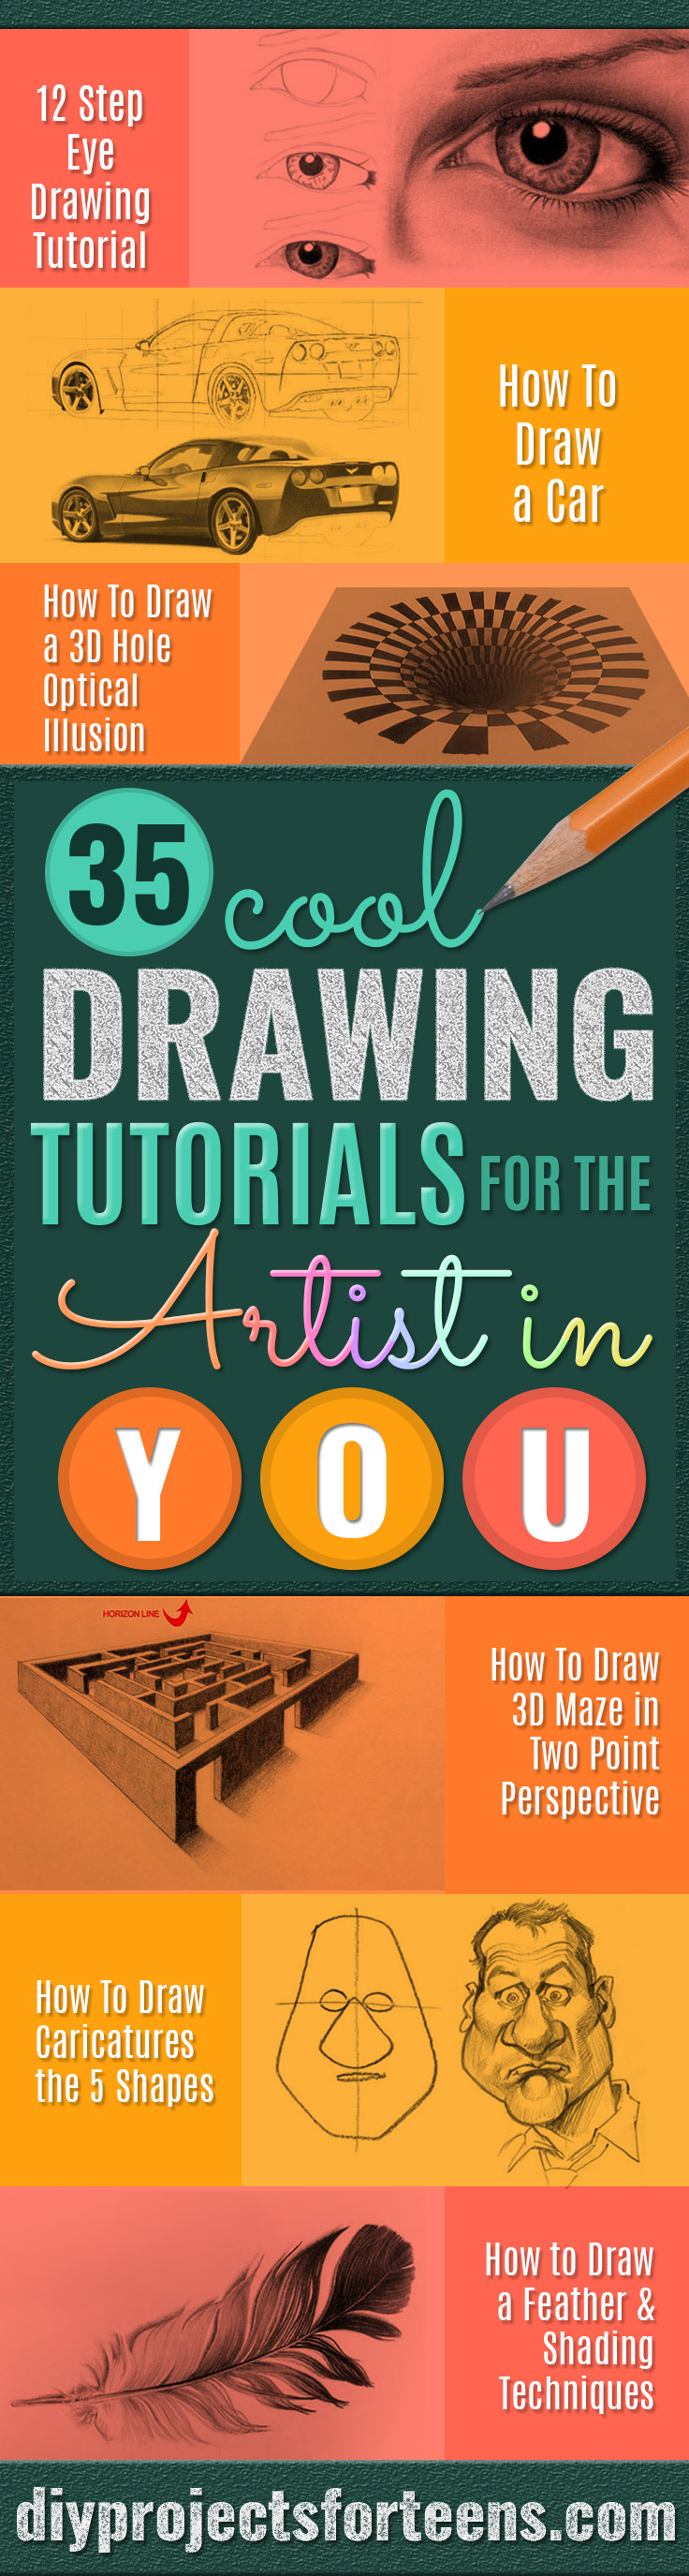 Cool Drawing Tutorials - Learn How To Draw Animals, Easy People, Step by Step Drawing and Tutorial With Instructions - Creative Arts and Crafts Ideas for Teens - Shapes, Shading, Buildings, School Art Projects, Drawing for Beginners and Teenagers, Kids http://diyprojectsforteens.com/cool-drawing-tutorials